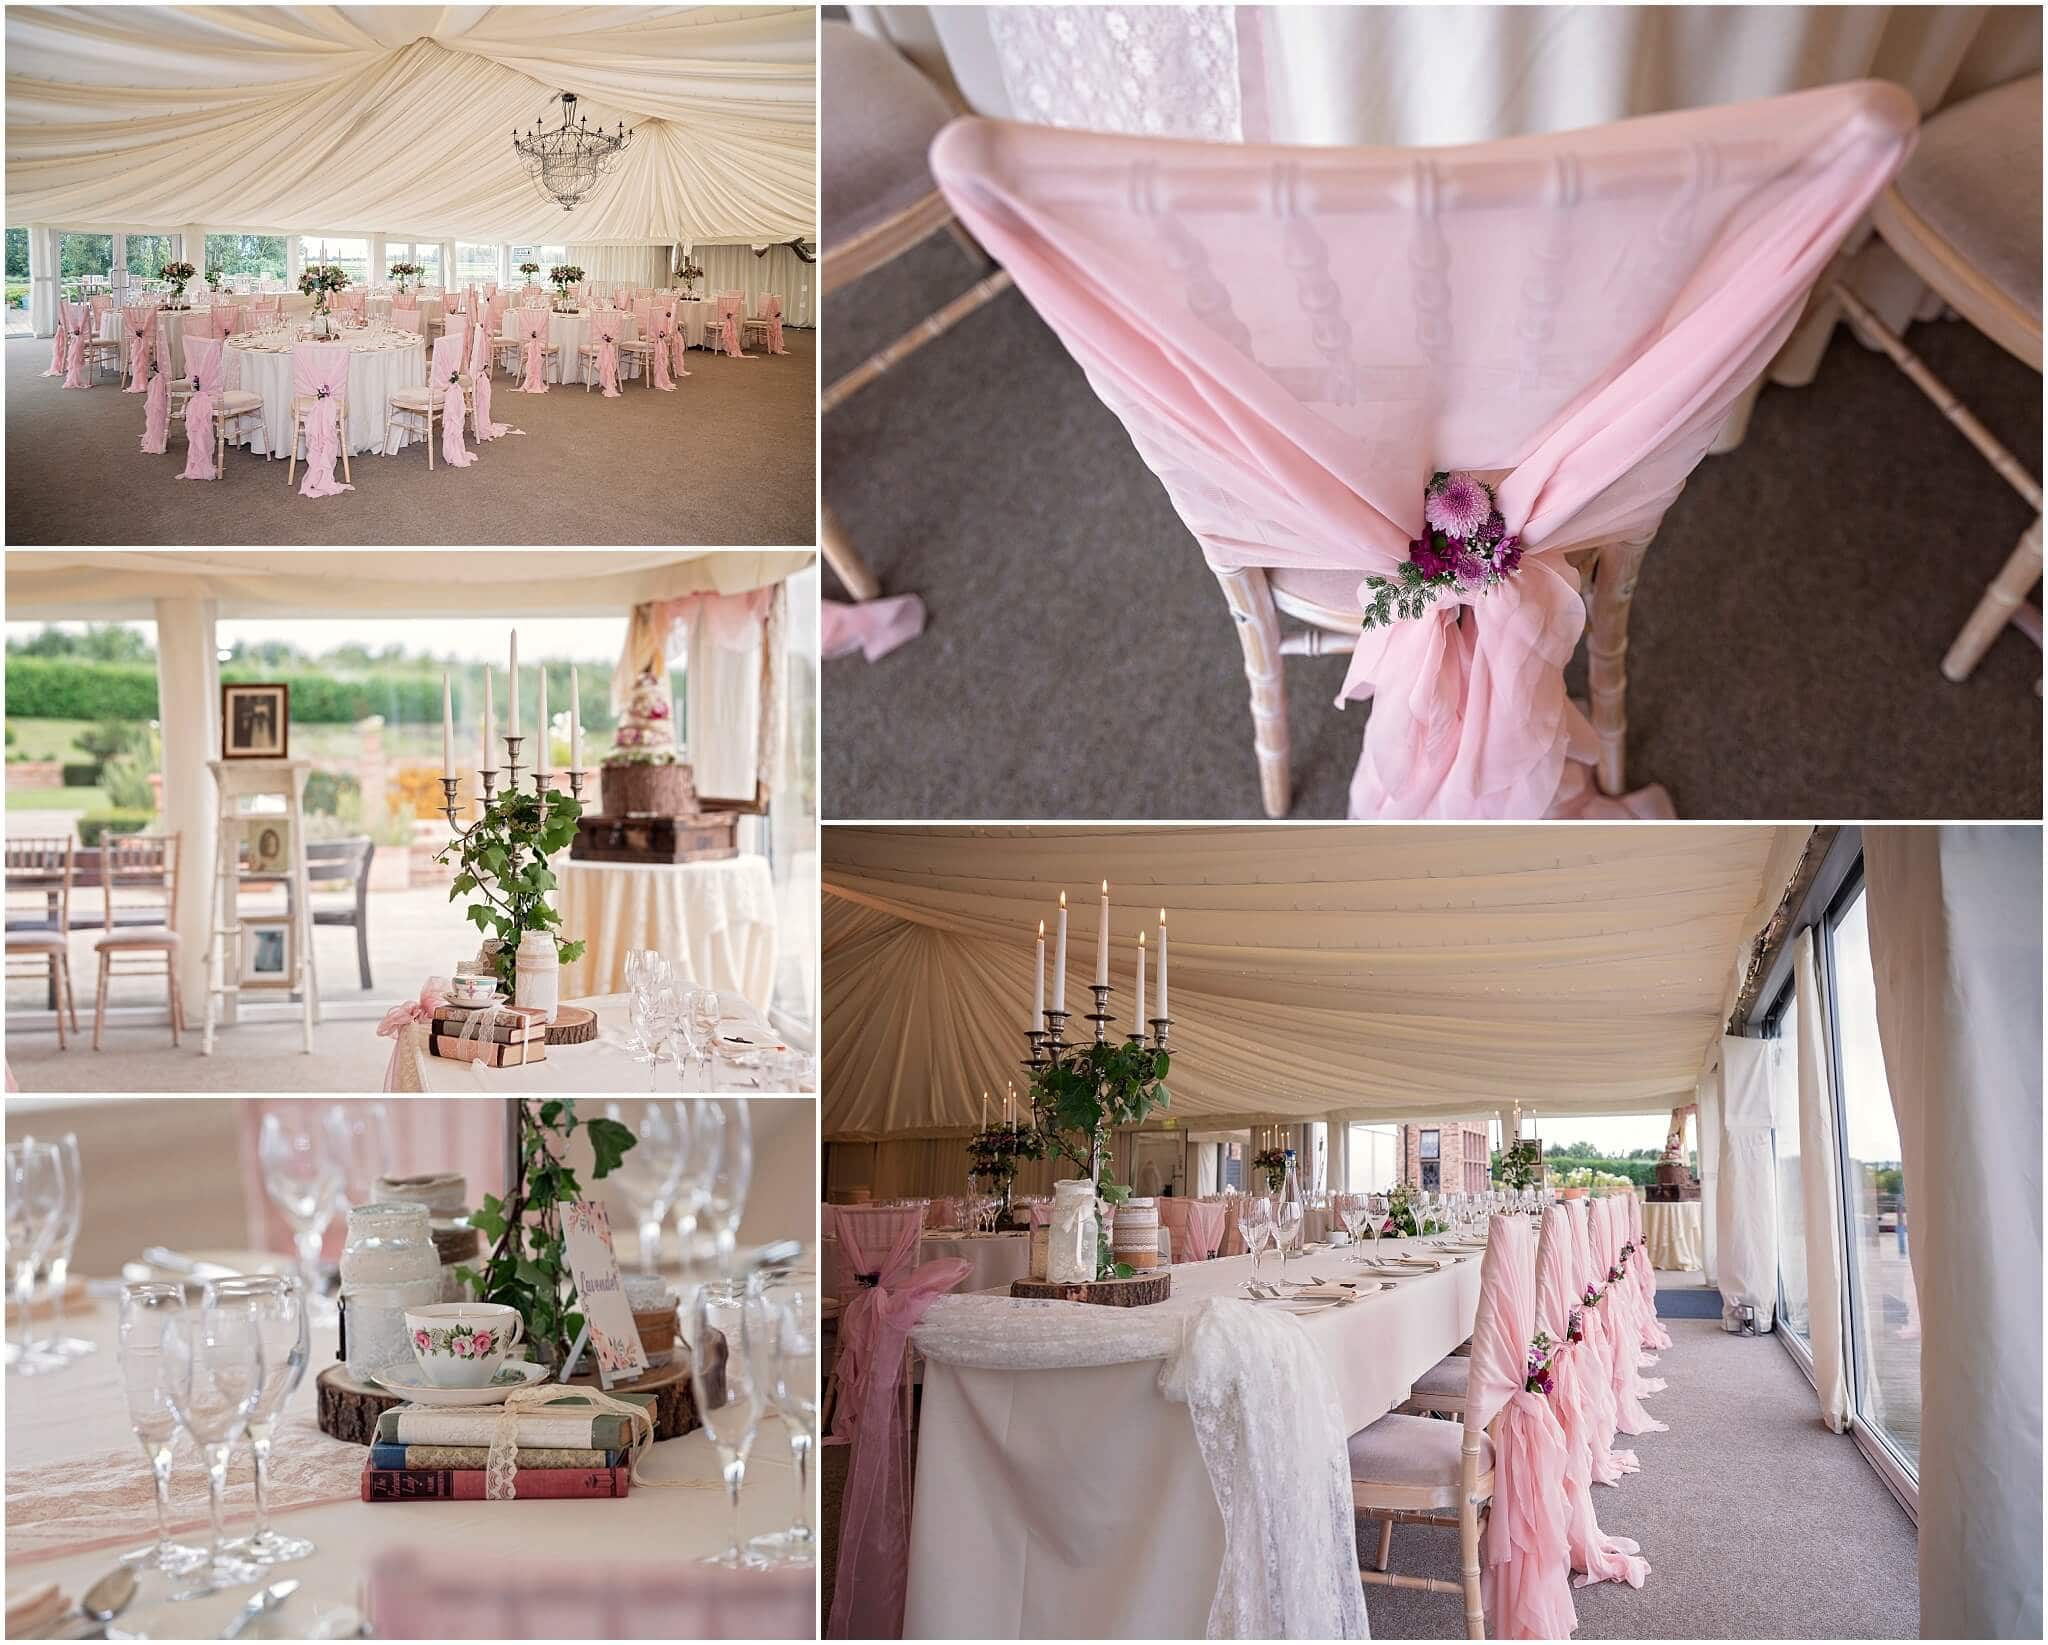 Vintage styling from Dollys Vintage Tea Party